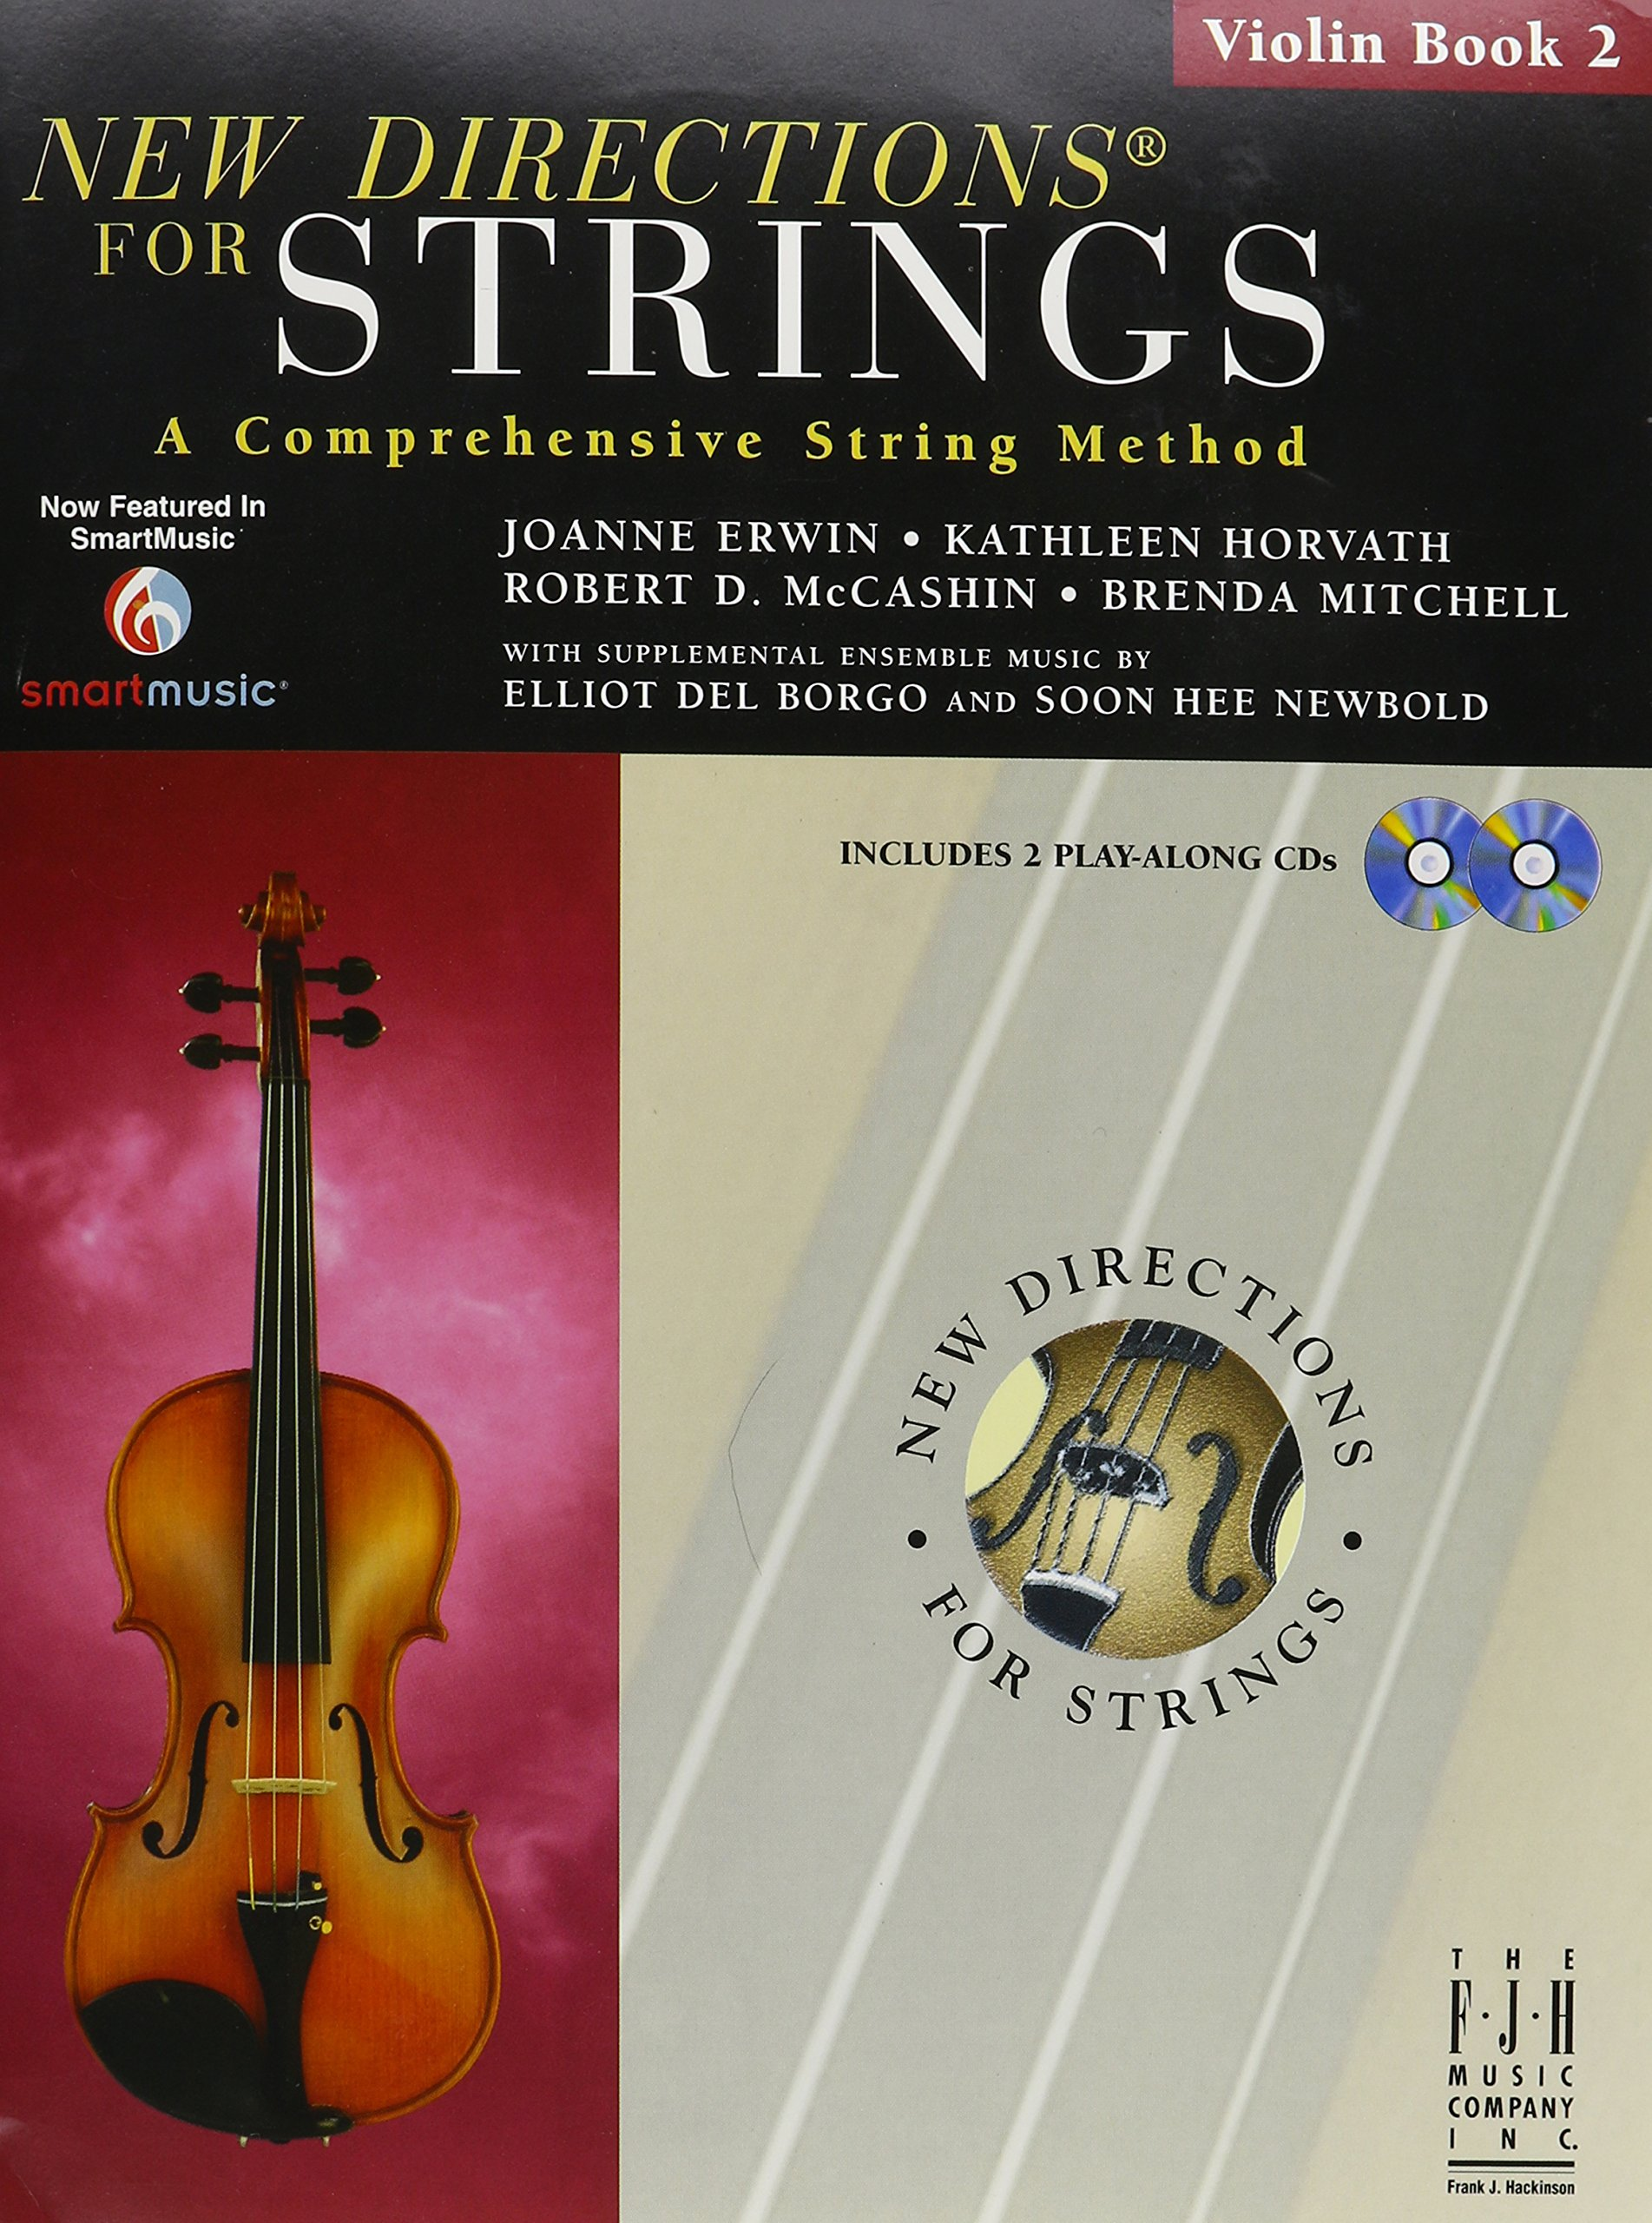 Amazon new directions for strings violin book 2 9781569397060 amazon new directions for strings violin book 2 9781569397060 joanne erwin kathleen horvath robert d mccashin brenda mitchell books fandeluxe Choice Image